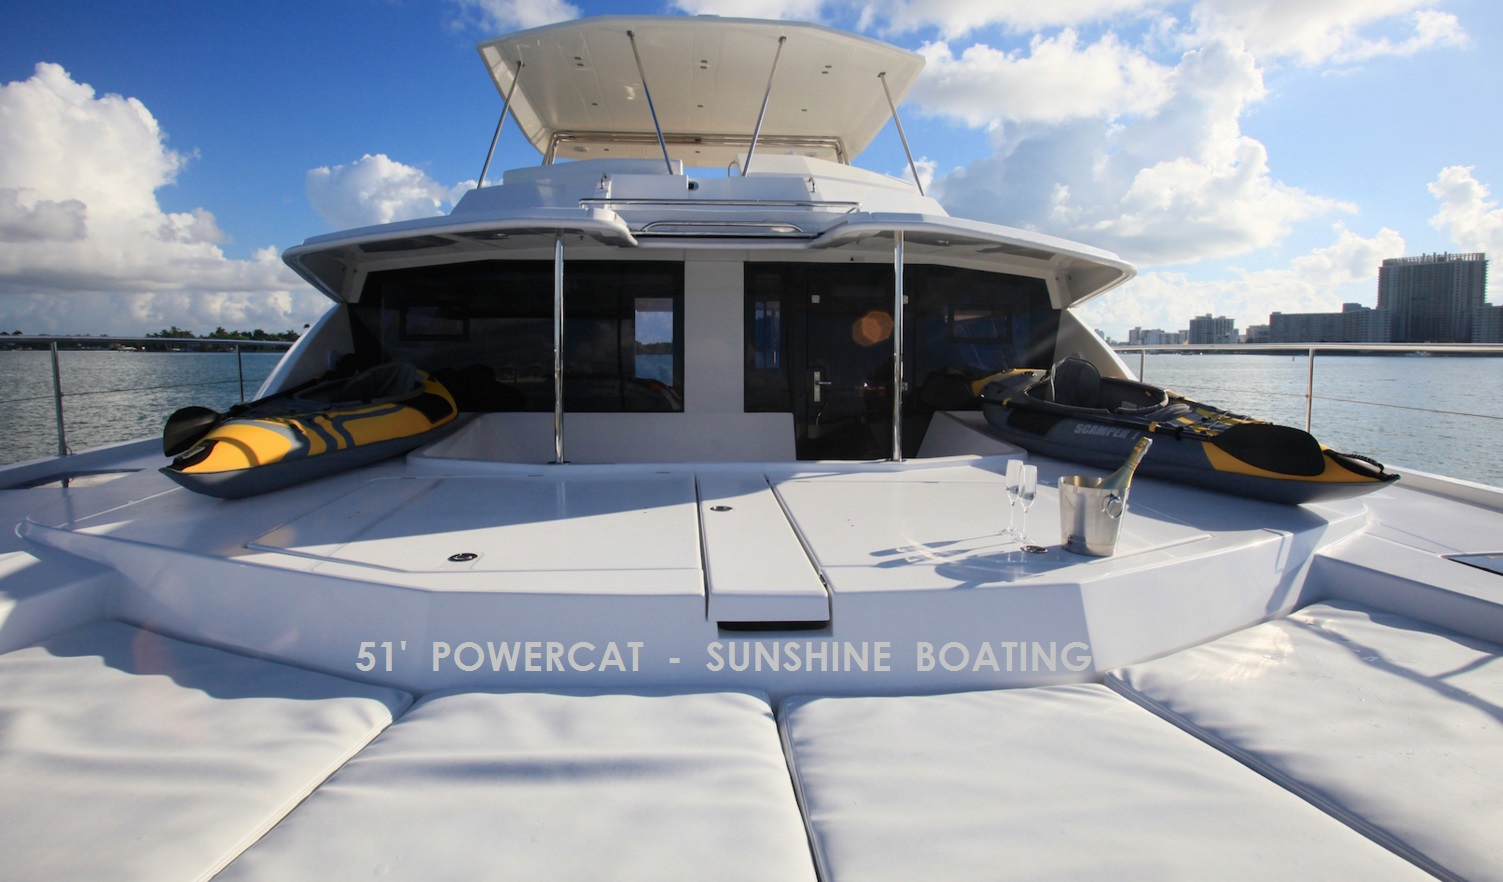 sunshine-boating-powercat-51-m